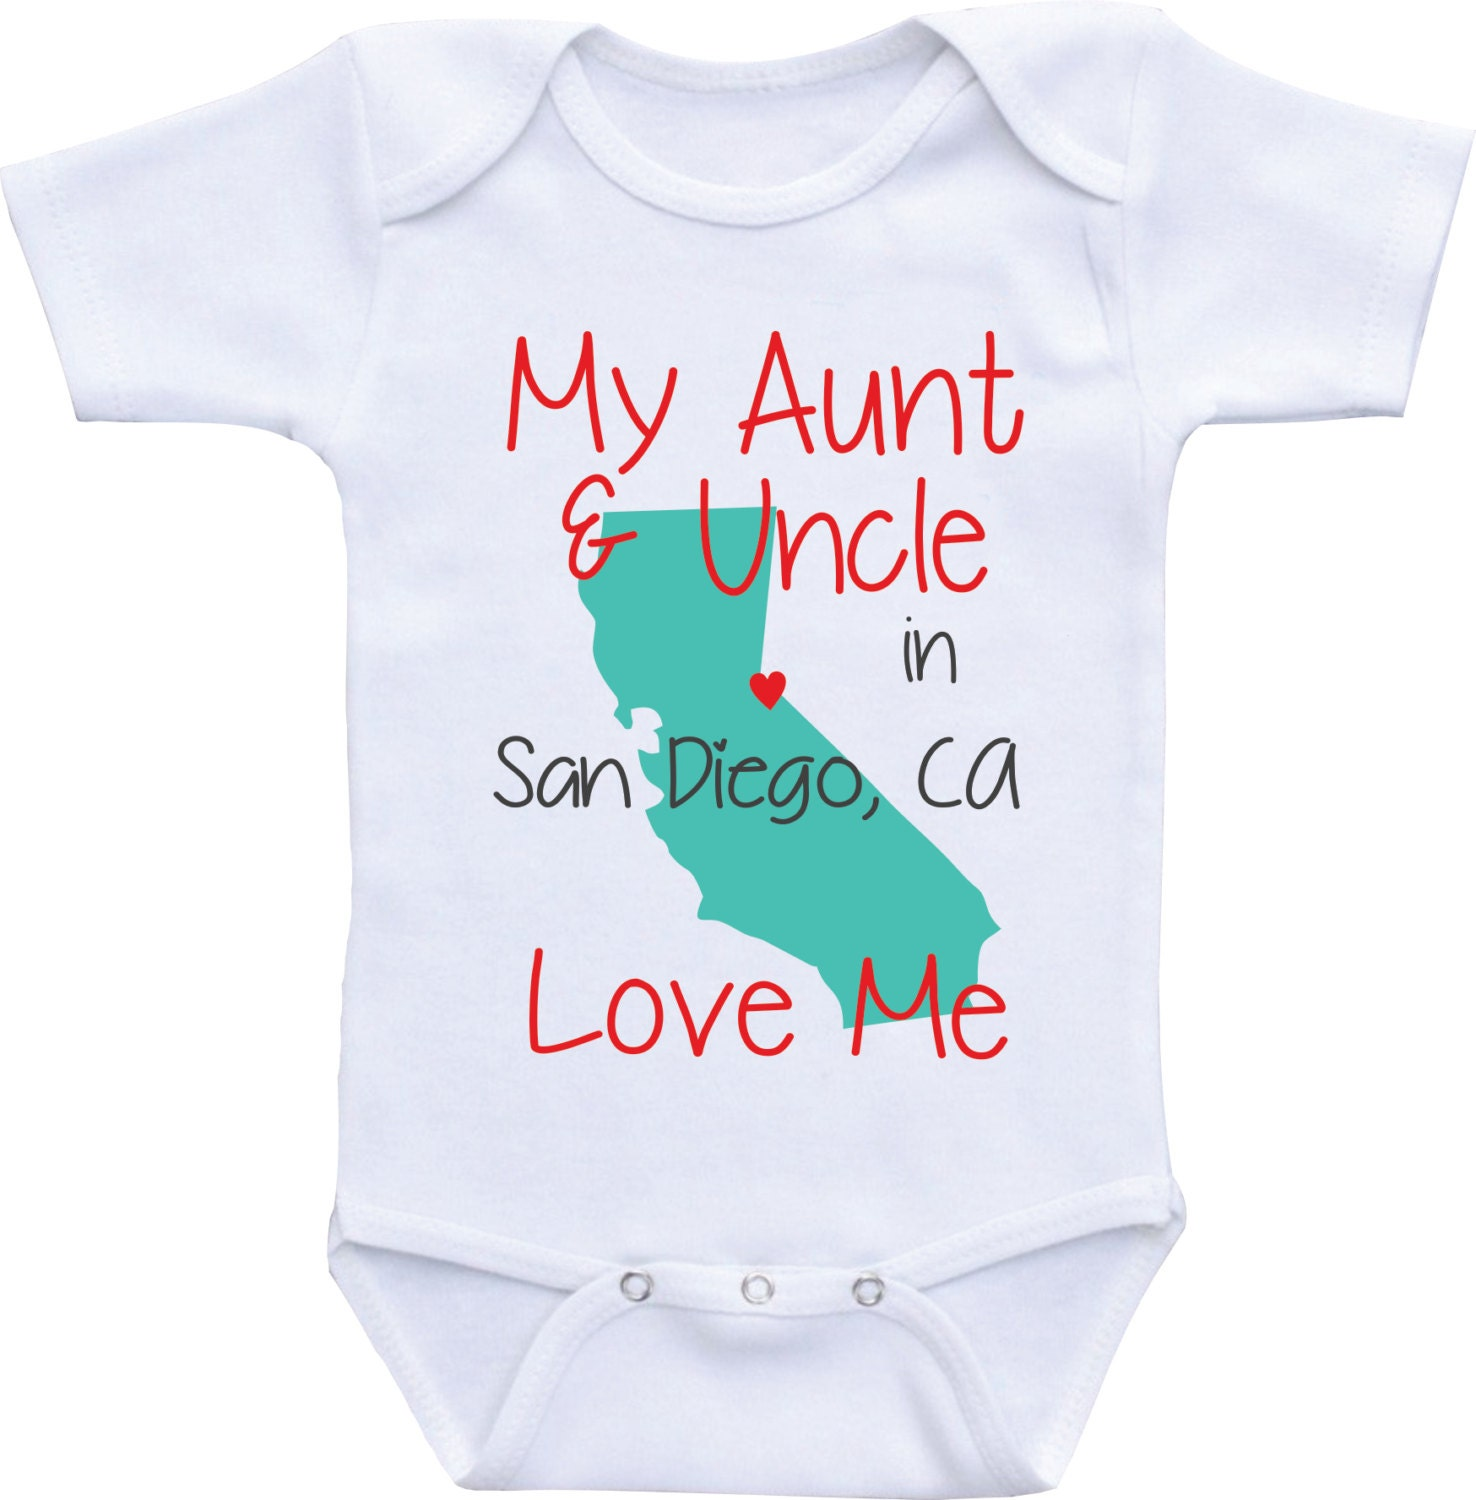 Aunt and Uncle Baby Clothes My Uncle and Aunt Love Me esie